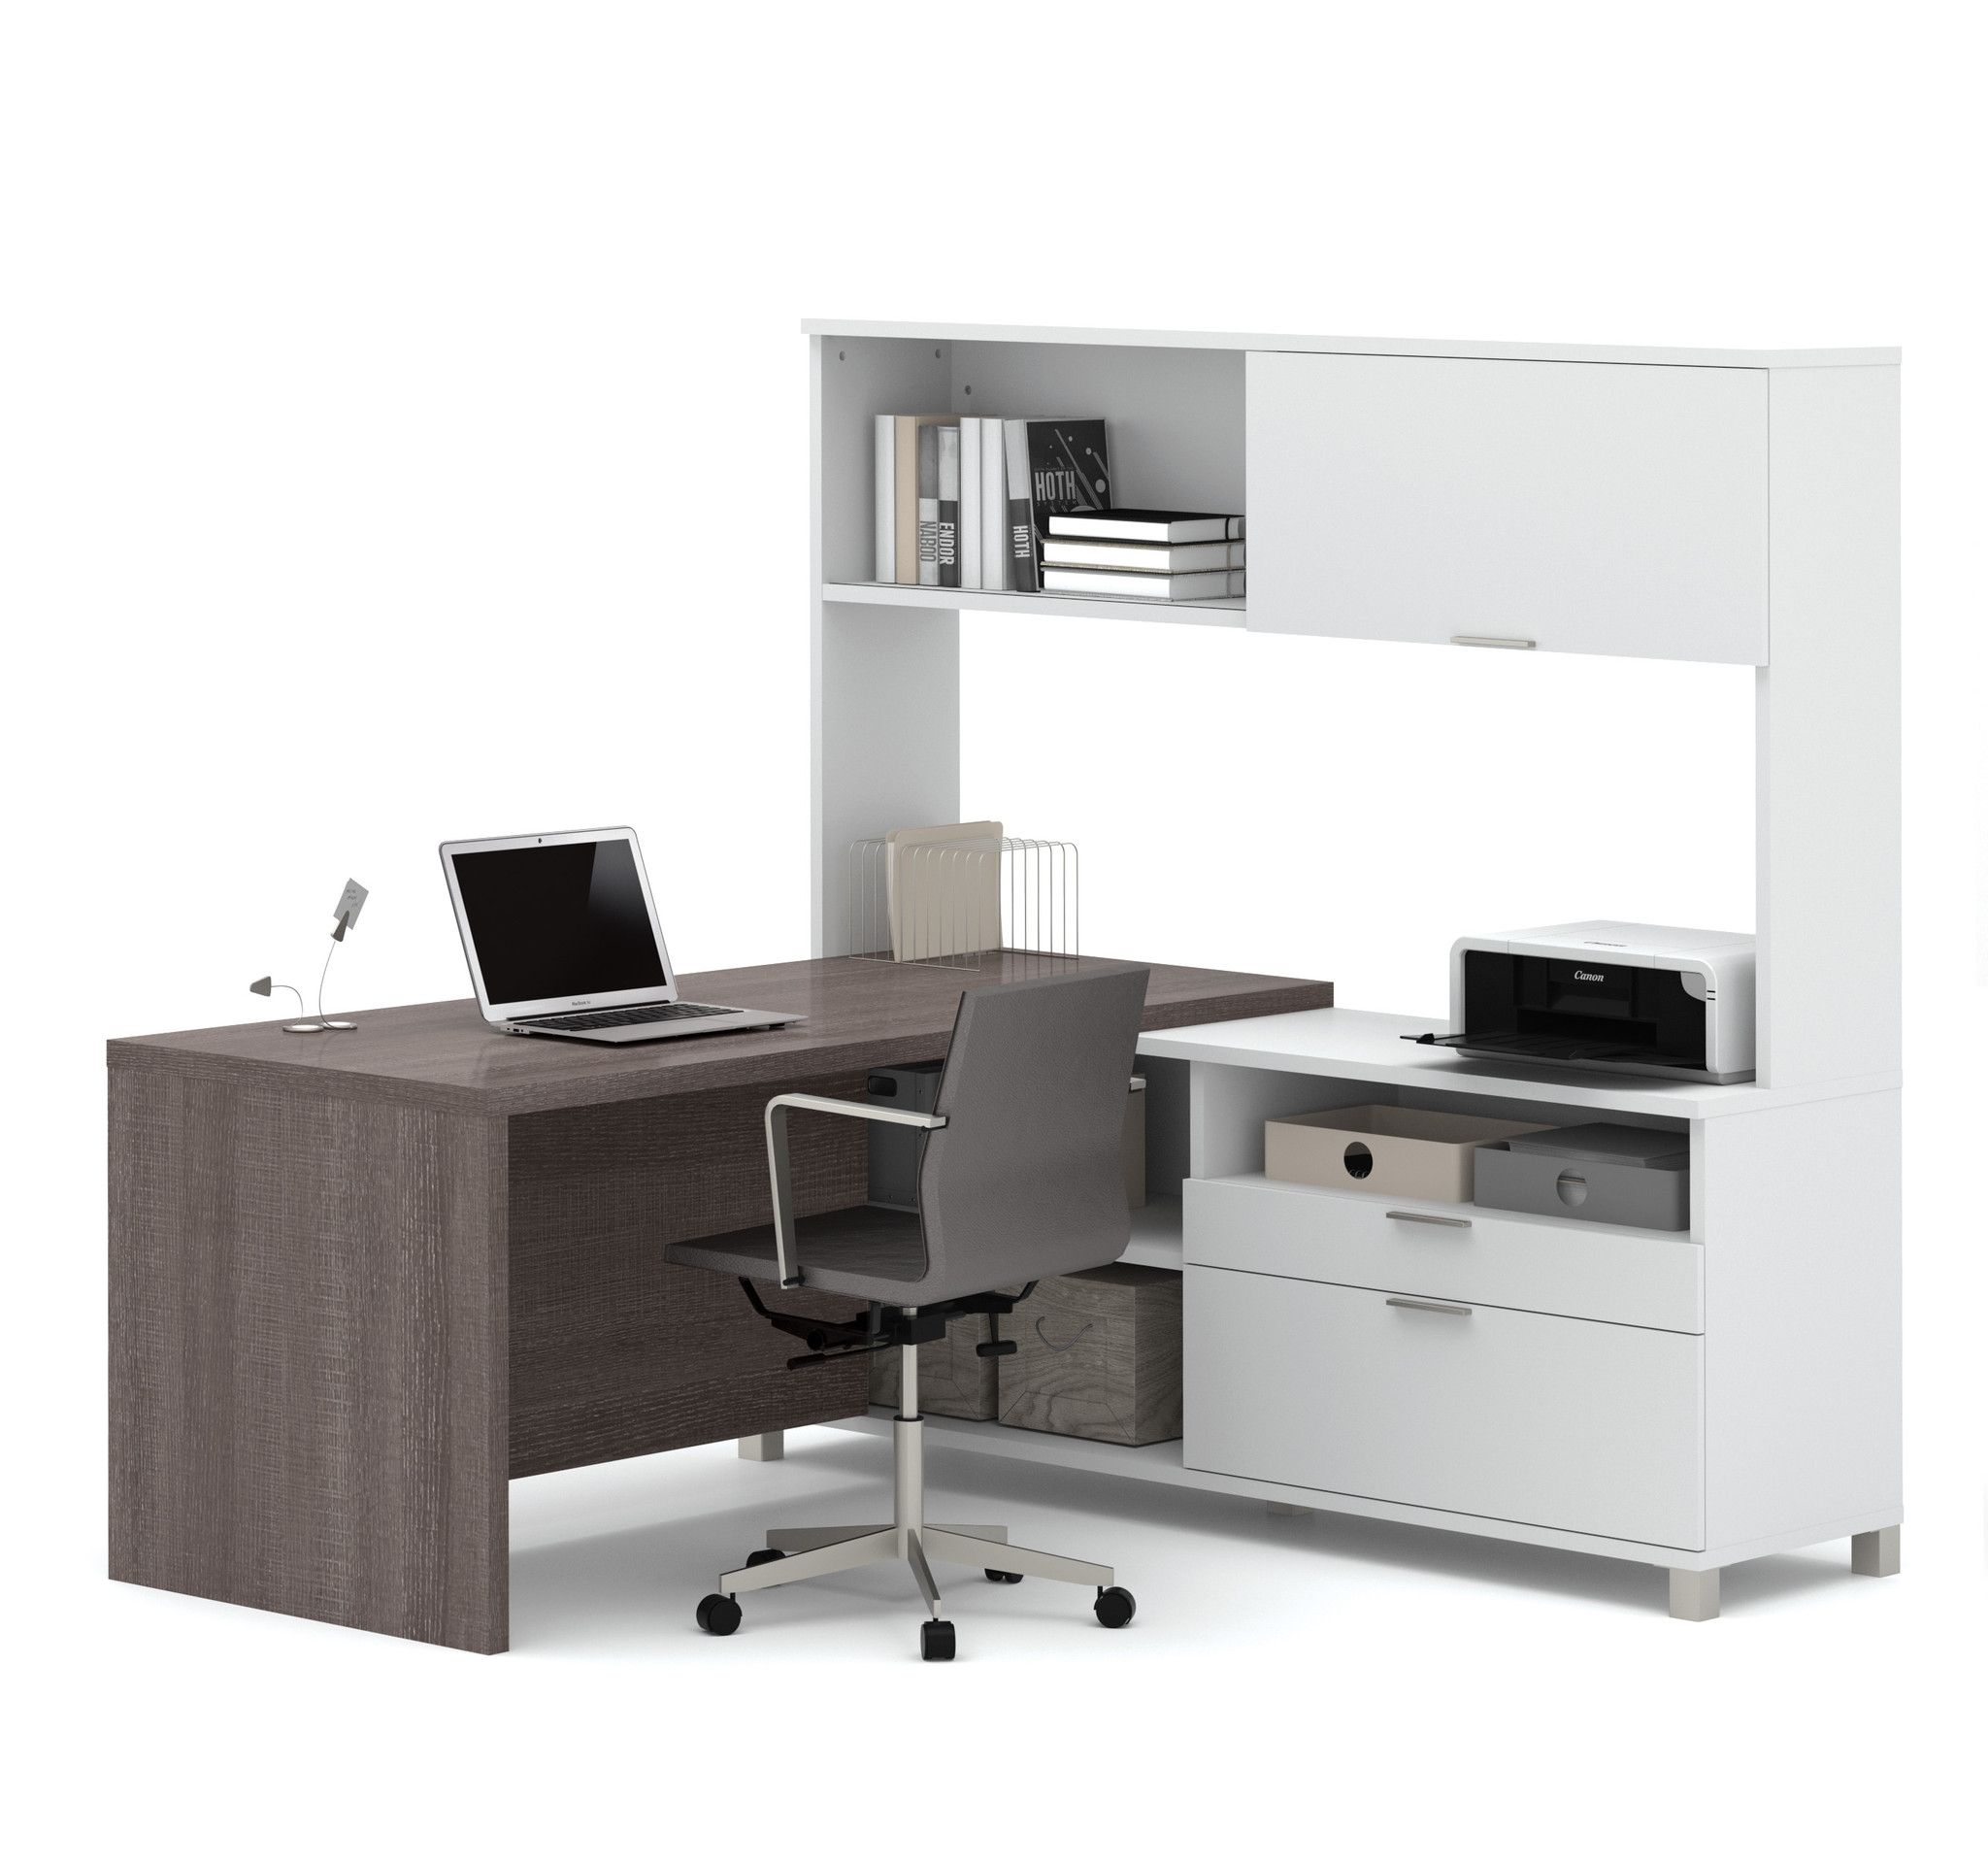 with ip office mainstays hutch desk multiple colors l walmart com shaped